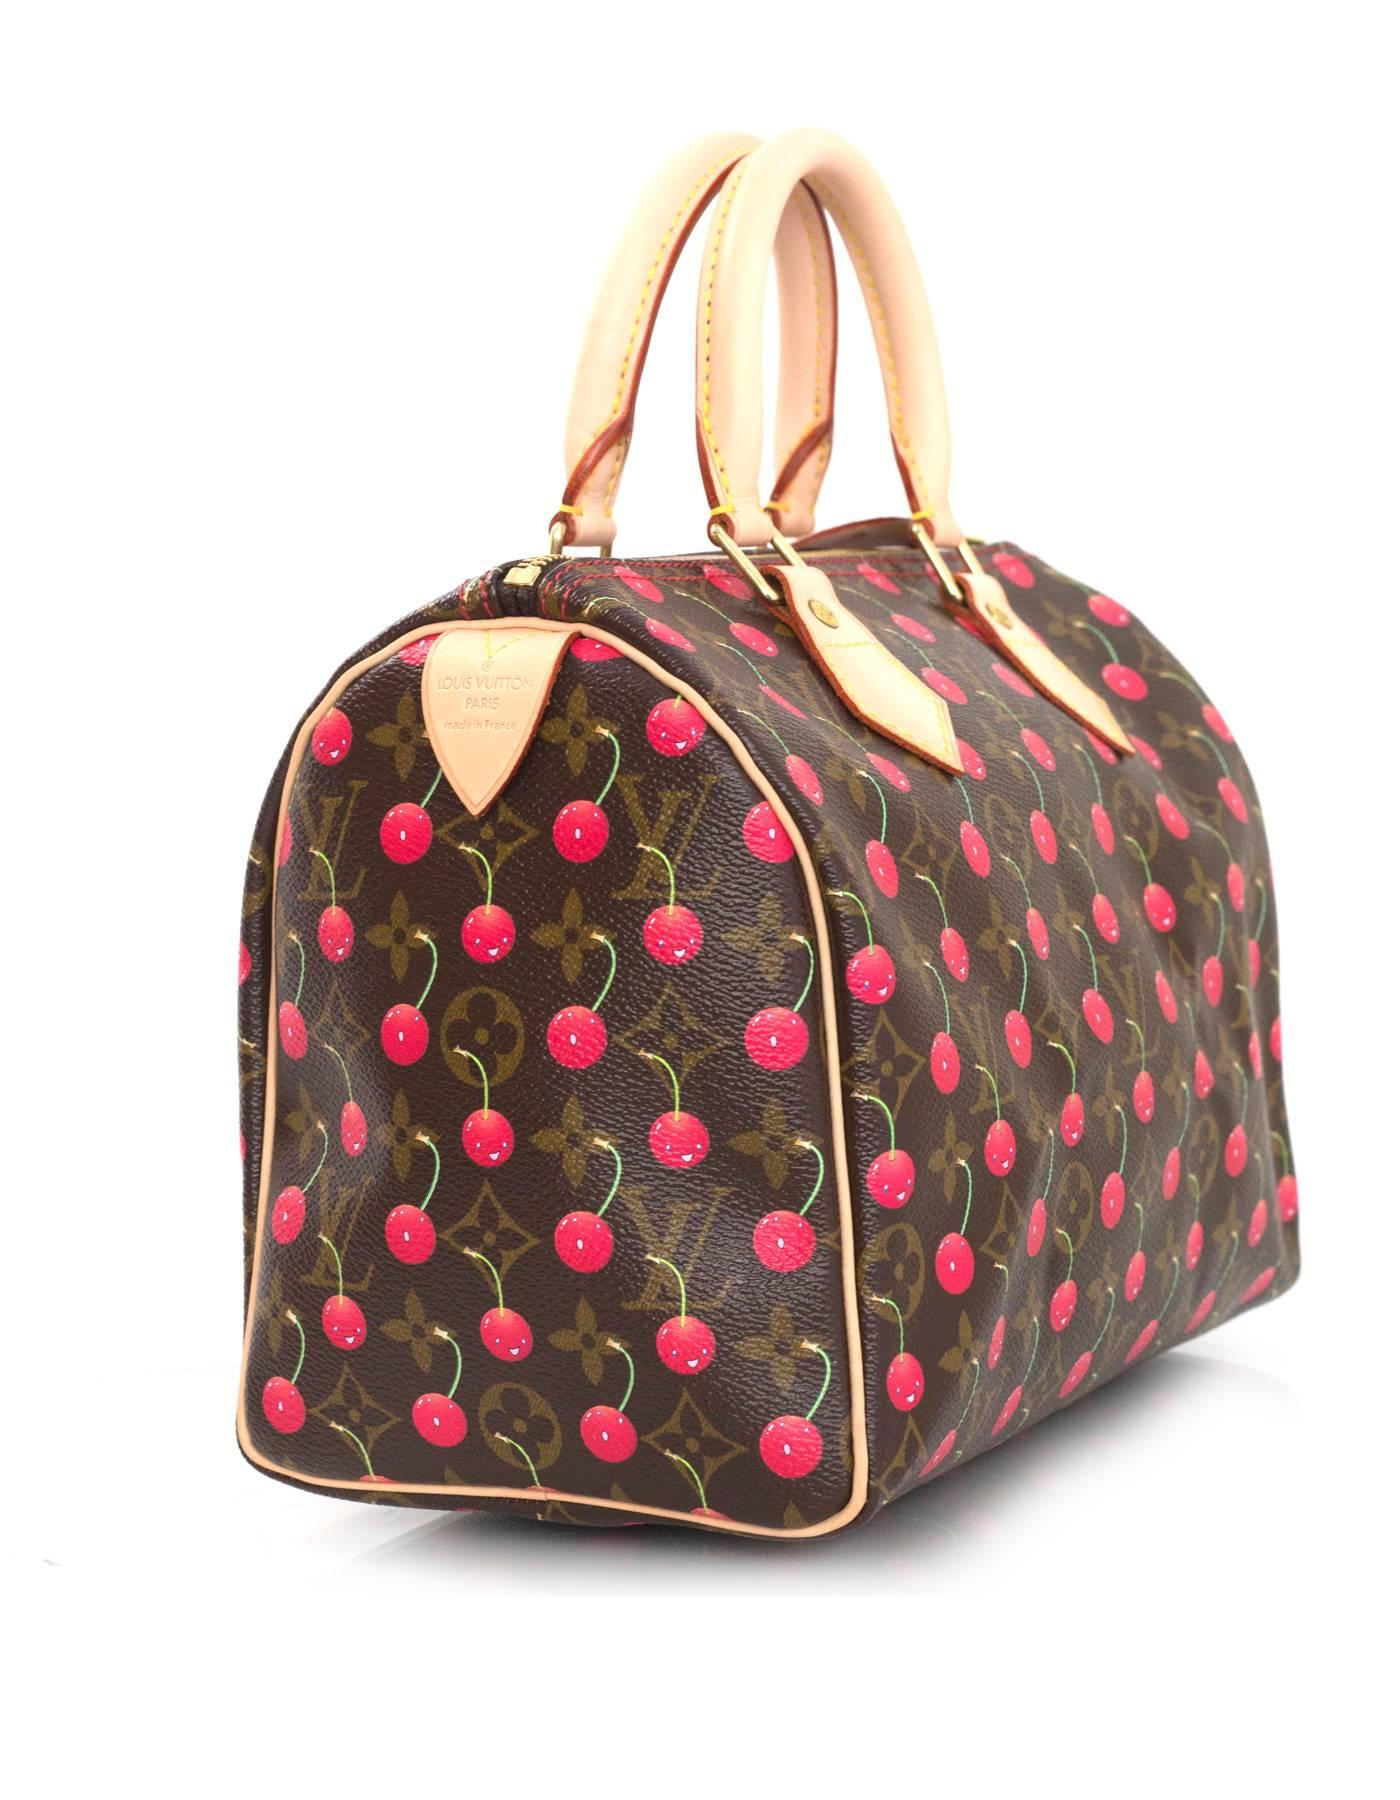 b5fd228c3f7b Louis Vuitton Limited Edition Monogram Cherry Cerises Speedy 25 Bag For  Sale at 1stdibs